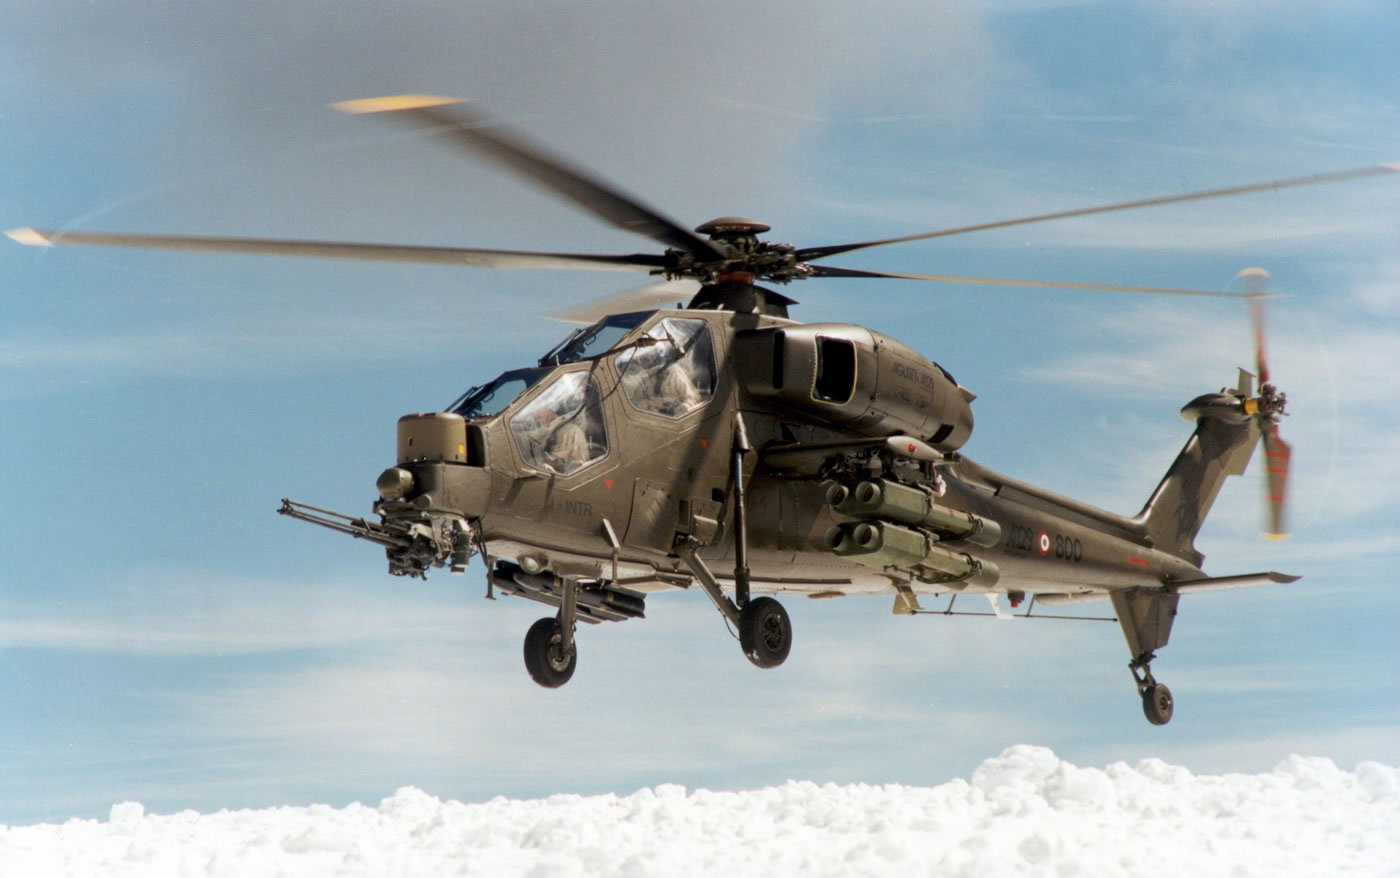 denel helicopter with Gallery Military Attack Helicopters on Gallery military attack helicopters further Saaf 1239 South Africa Air Force Denel Oryx furthermore 2010AAD furthermore Showthread further South Africa Wants To Resuscitate Its Arms Industry 139a79ccd551.